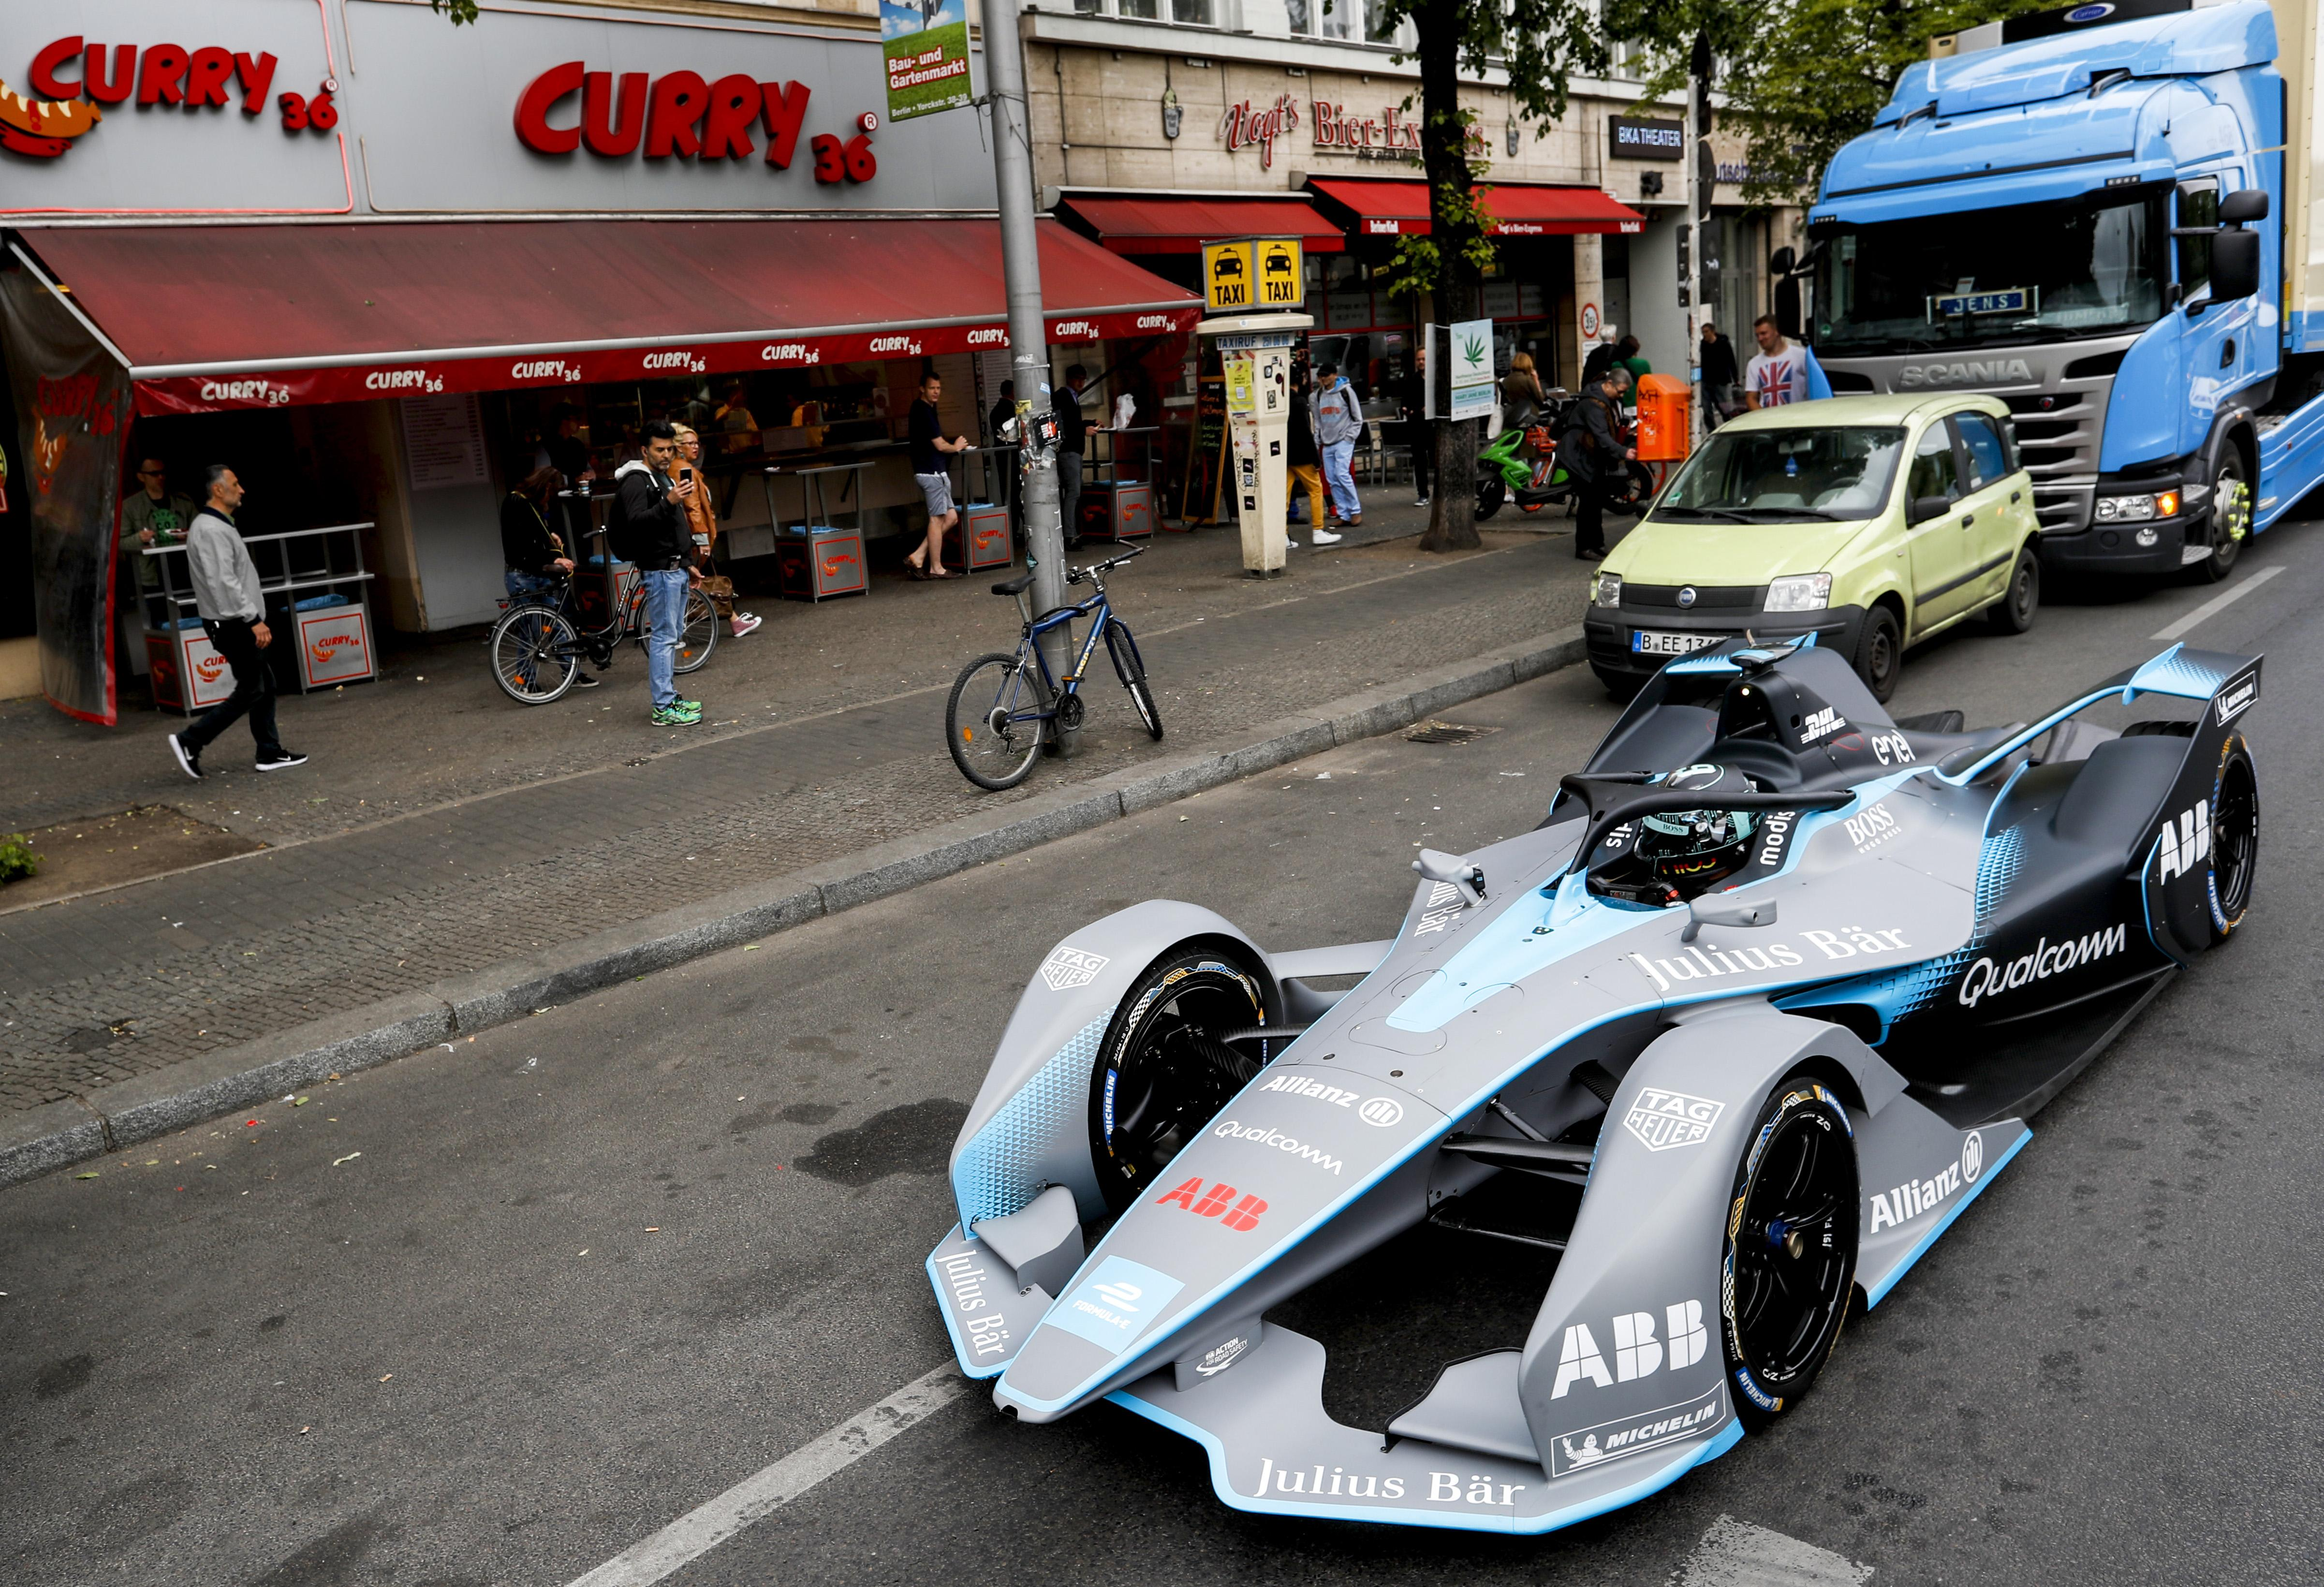 Here is Nico Rosberg driving the Gen2 car in the streets of Berlin